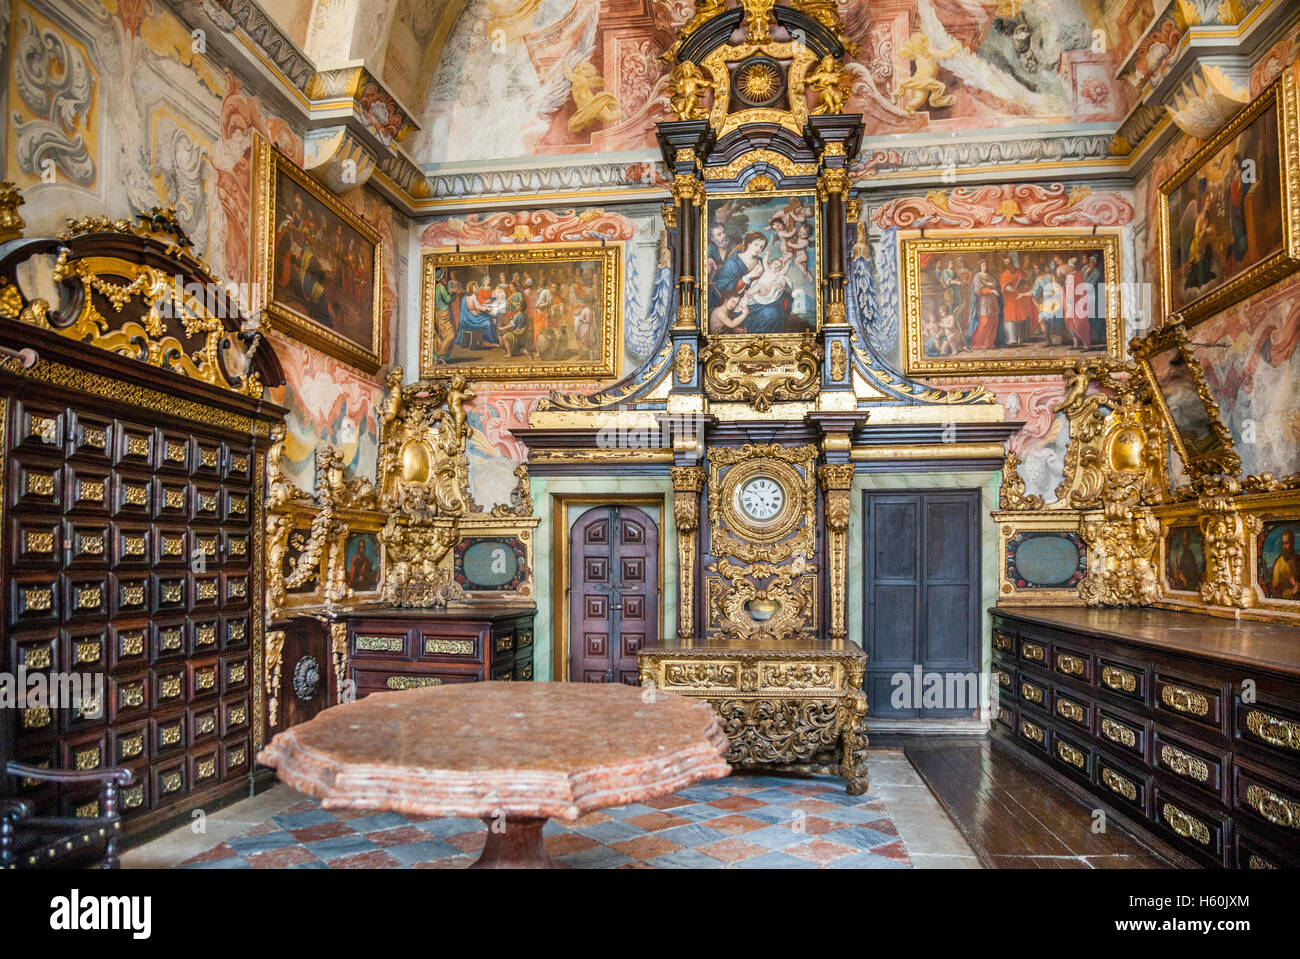 Portugal, Region Norte, Porto, ancient sacristy with baroque murals and chest drawers at Se do Porto, Porto Cathedral - Stock Image